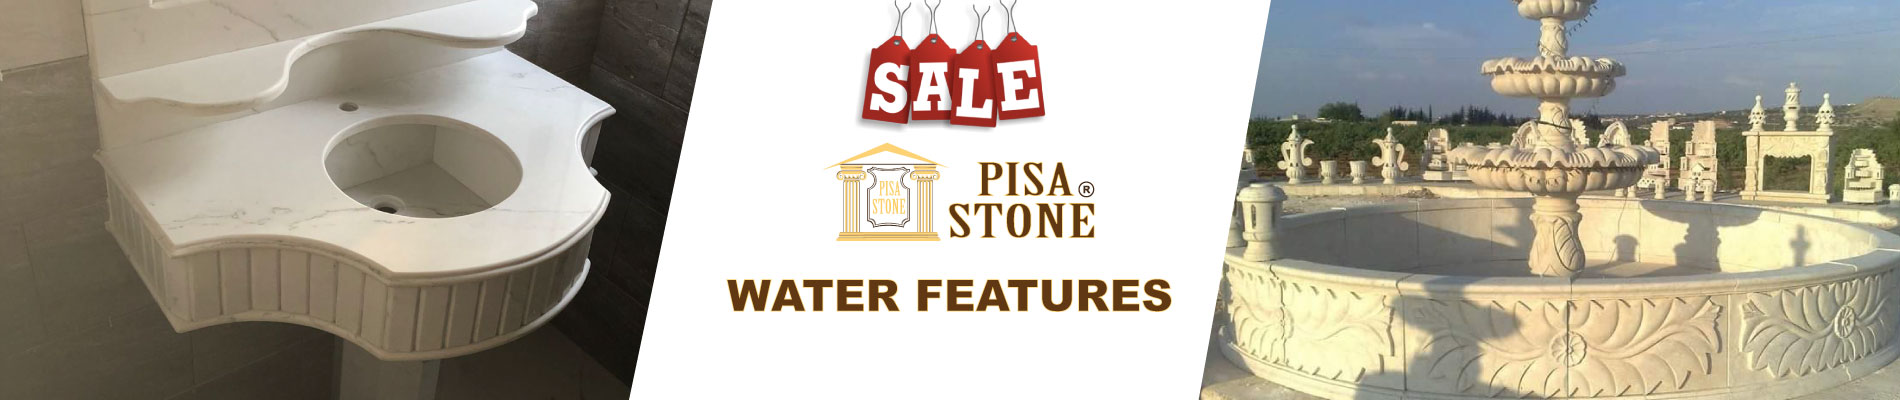 WATER-FEATURES-Pisastone®